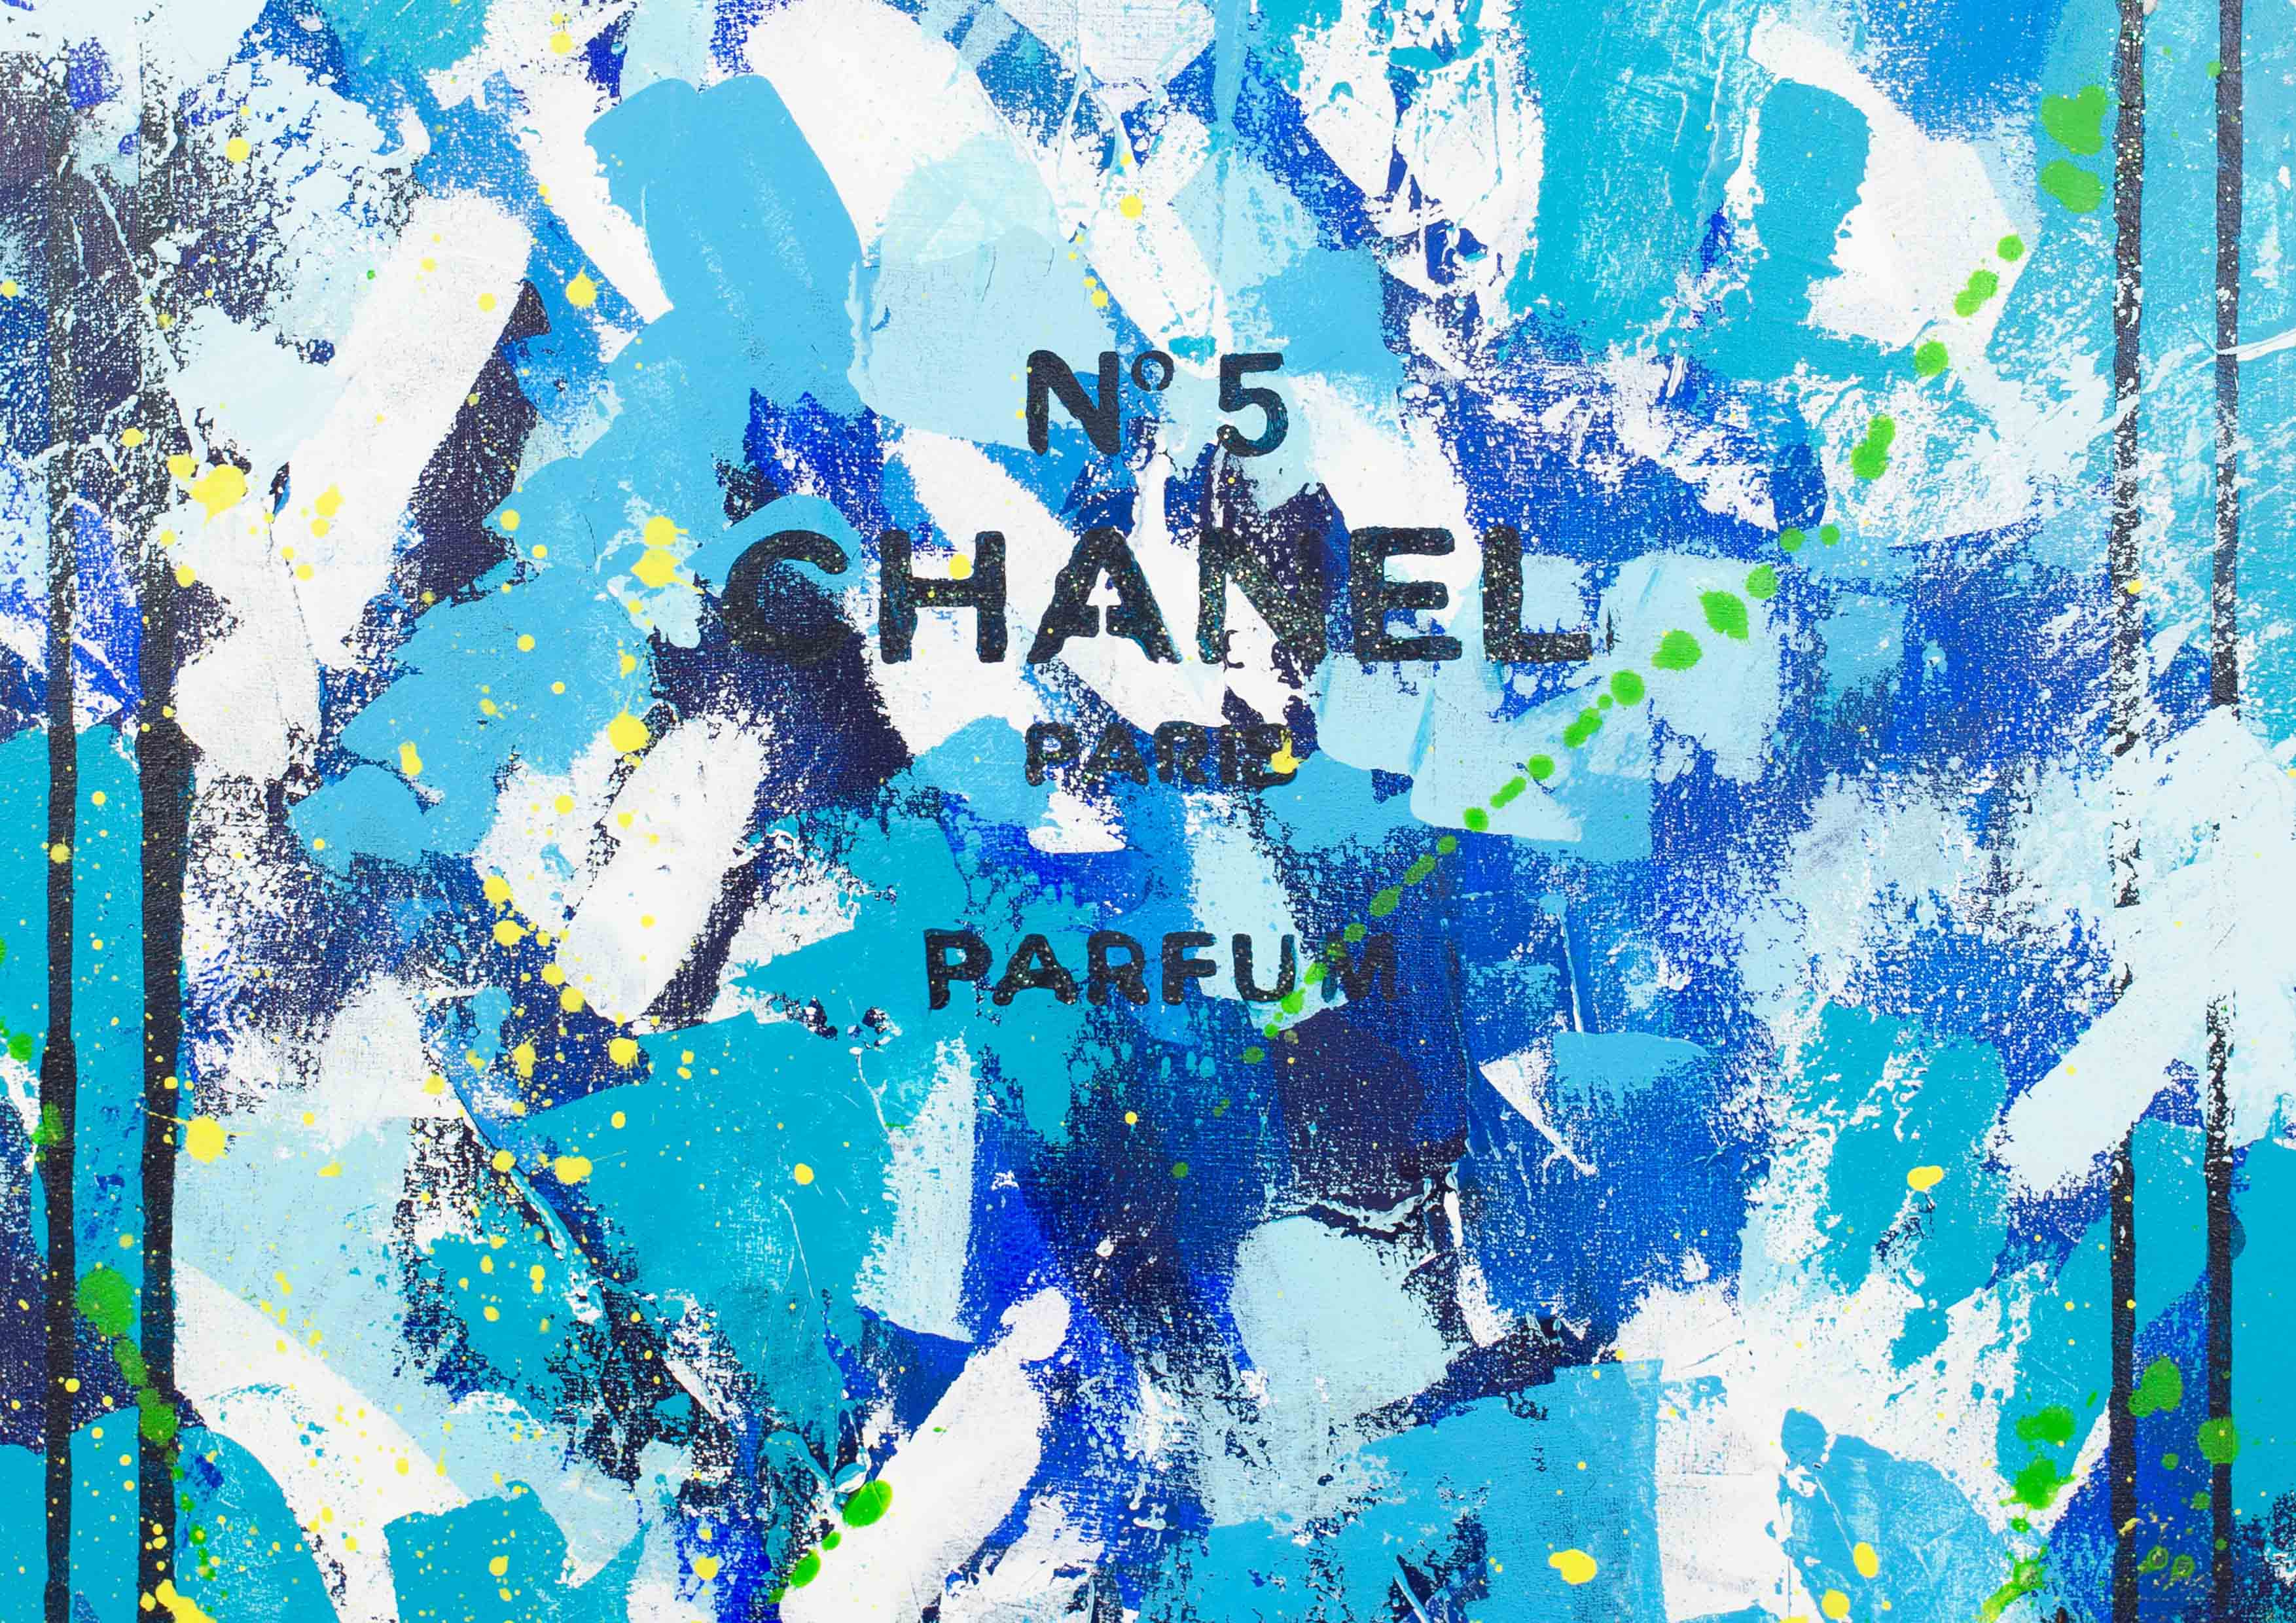 ART-PAINT-CHANEL-PERFUME-SEA-SMELL-CANVAS-DETAIL